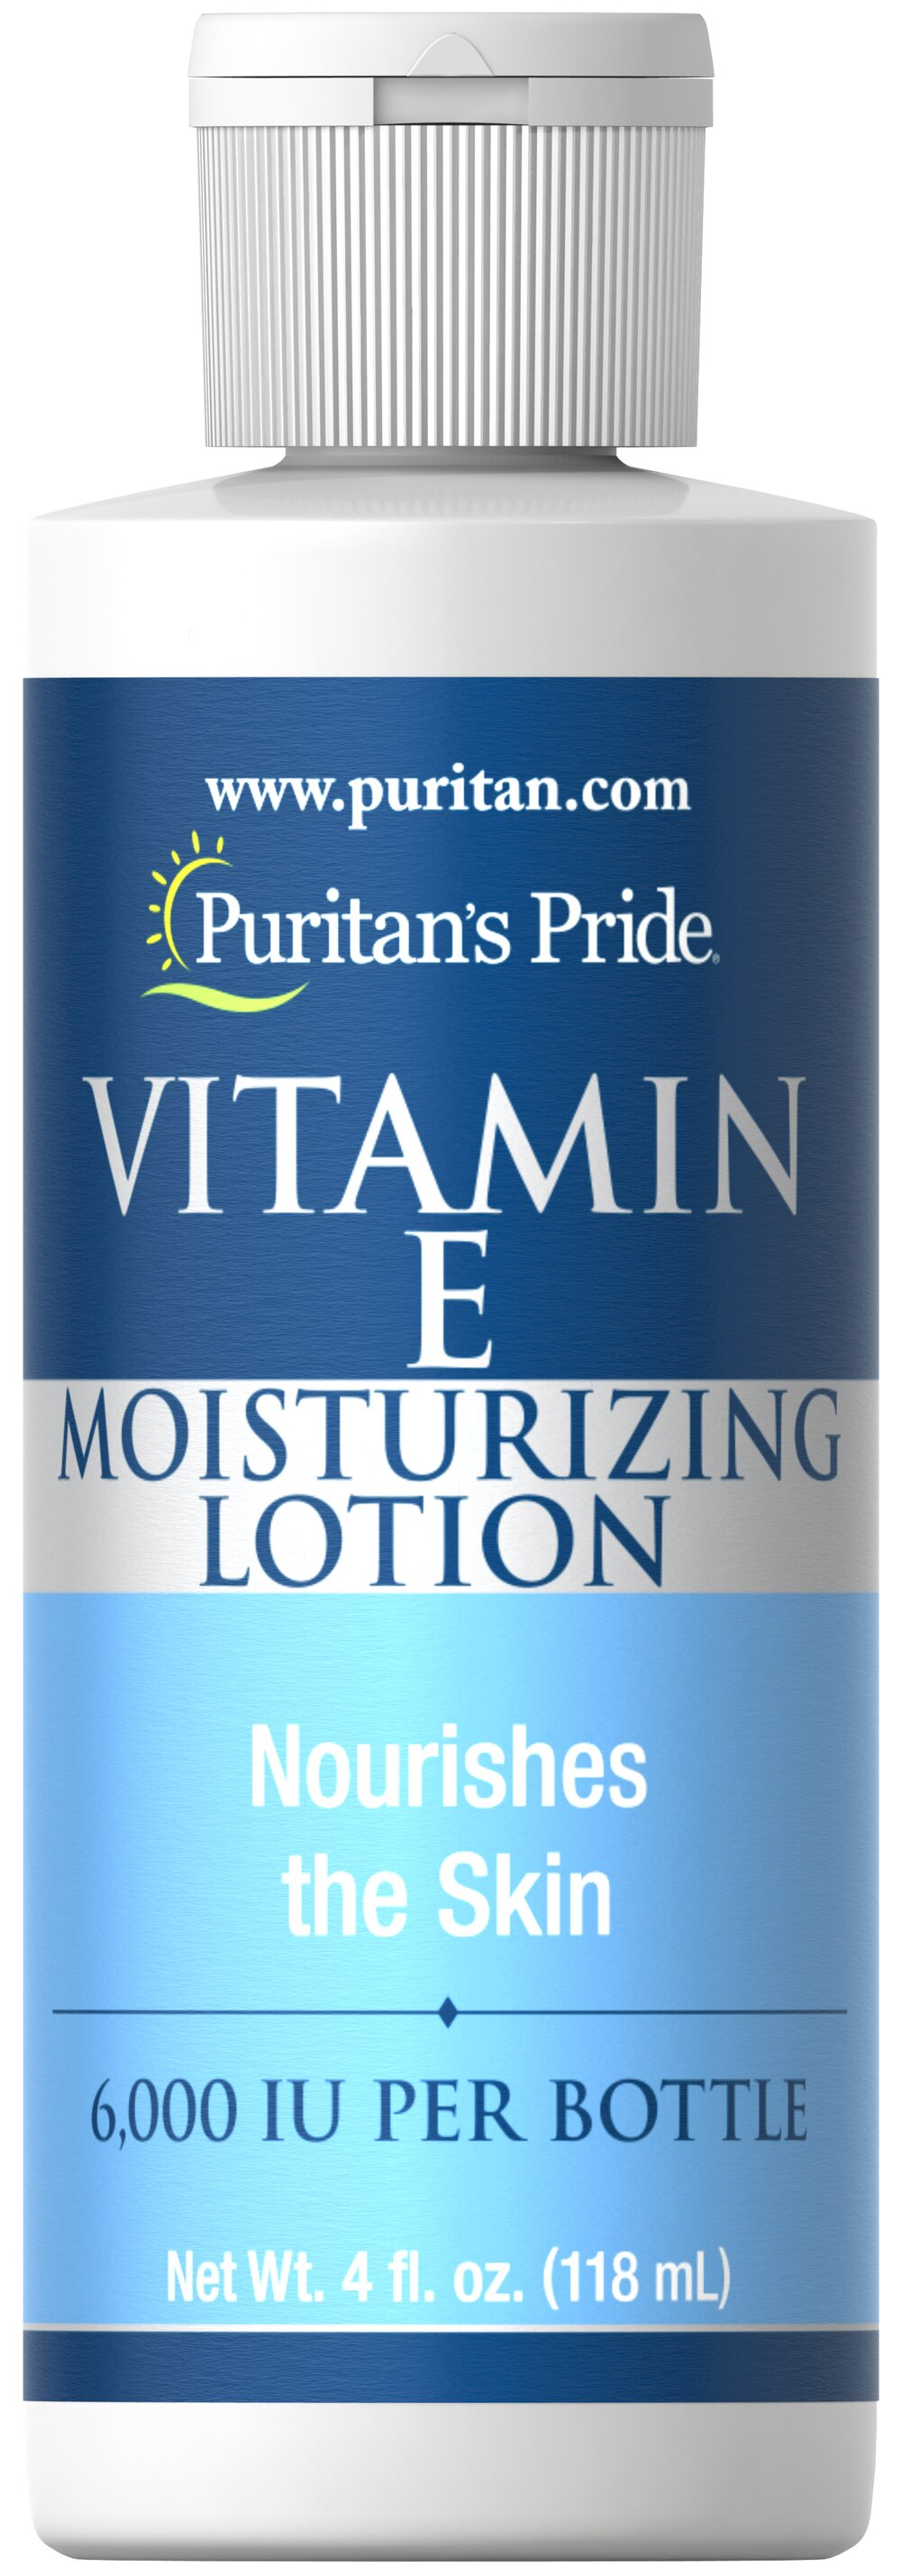 Vitamin E Moisturizing Lotion 6,000 IU <p>The All-Over Body Moisturizer</p>  <p>Now give your skin the natural benefits of Vitamin E Lotion. This rich lotion gives you 6,000 IU of Vitamin E per bottle with the added moisturizing benefits of natural Wheat Germ Oil. The protective emollient action maintains the natural moisture balance of the skin leaving even the driest skin smooth all over.</p> 4 oz Lotion 6000 IU $6.63